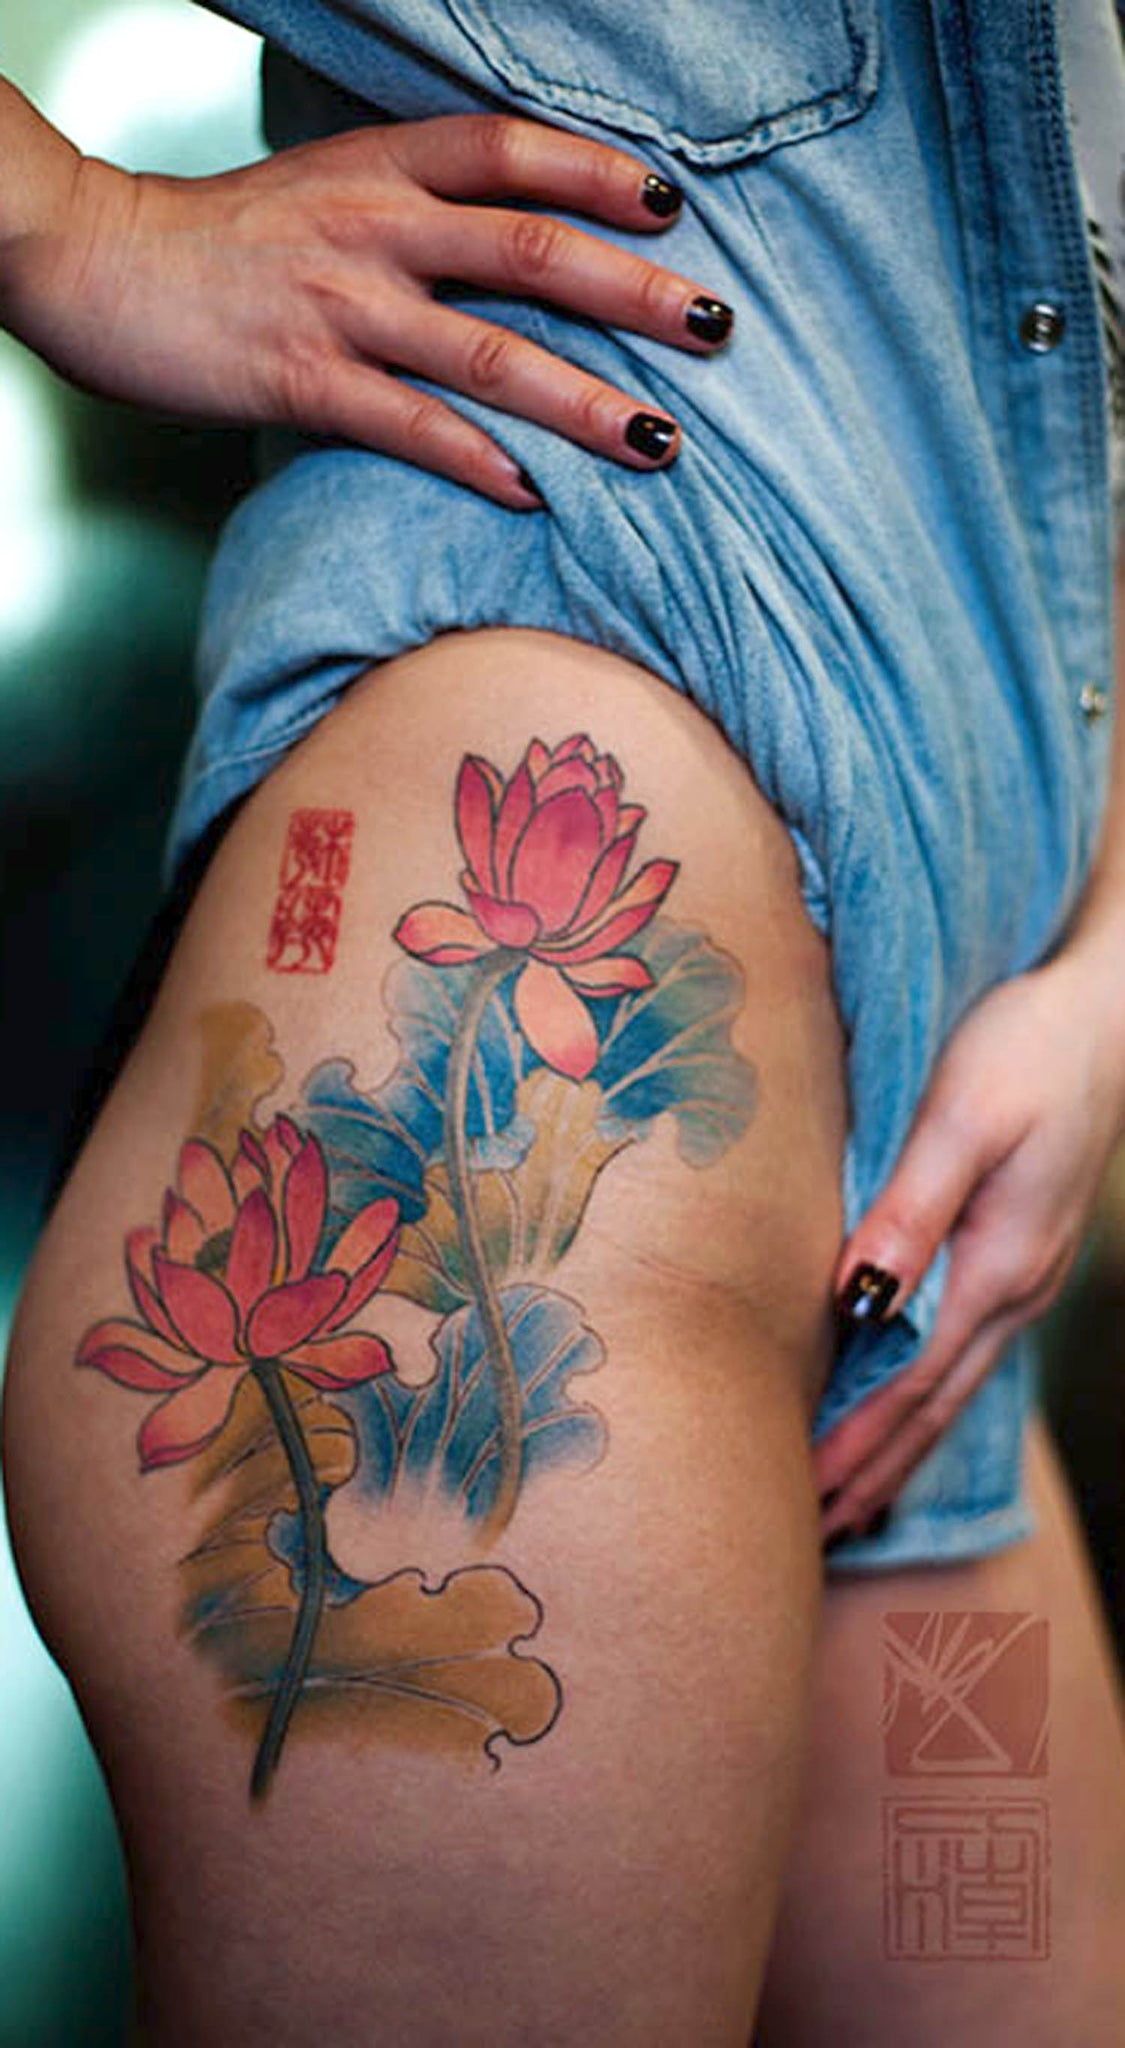 Colorful Water Lily Thigh Tattoo Ideas for Women - Women's Watercolor Asian Flower Hip Tat -  ideas asiáticas del tatuaje del muslo del lirio de agua - www.MyBodiArt.com